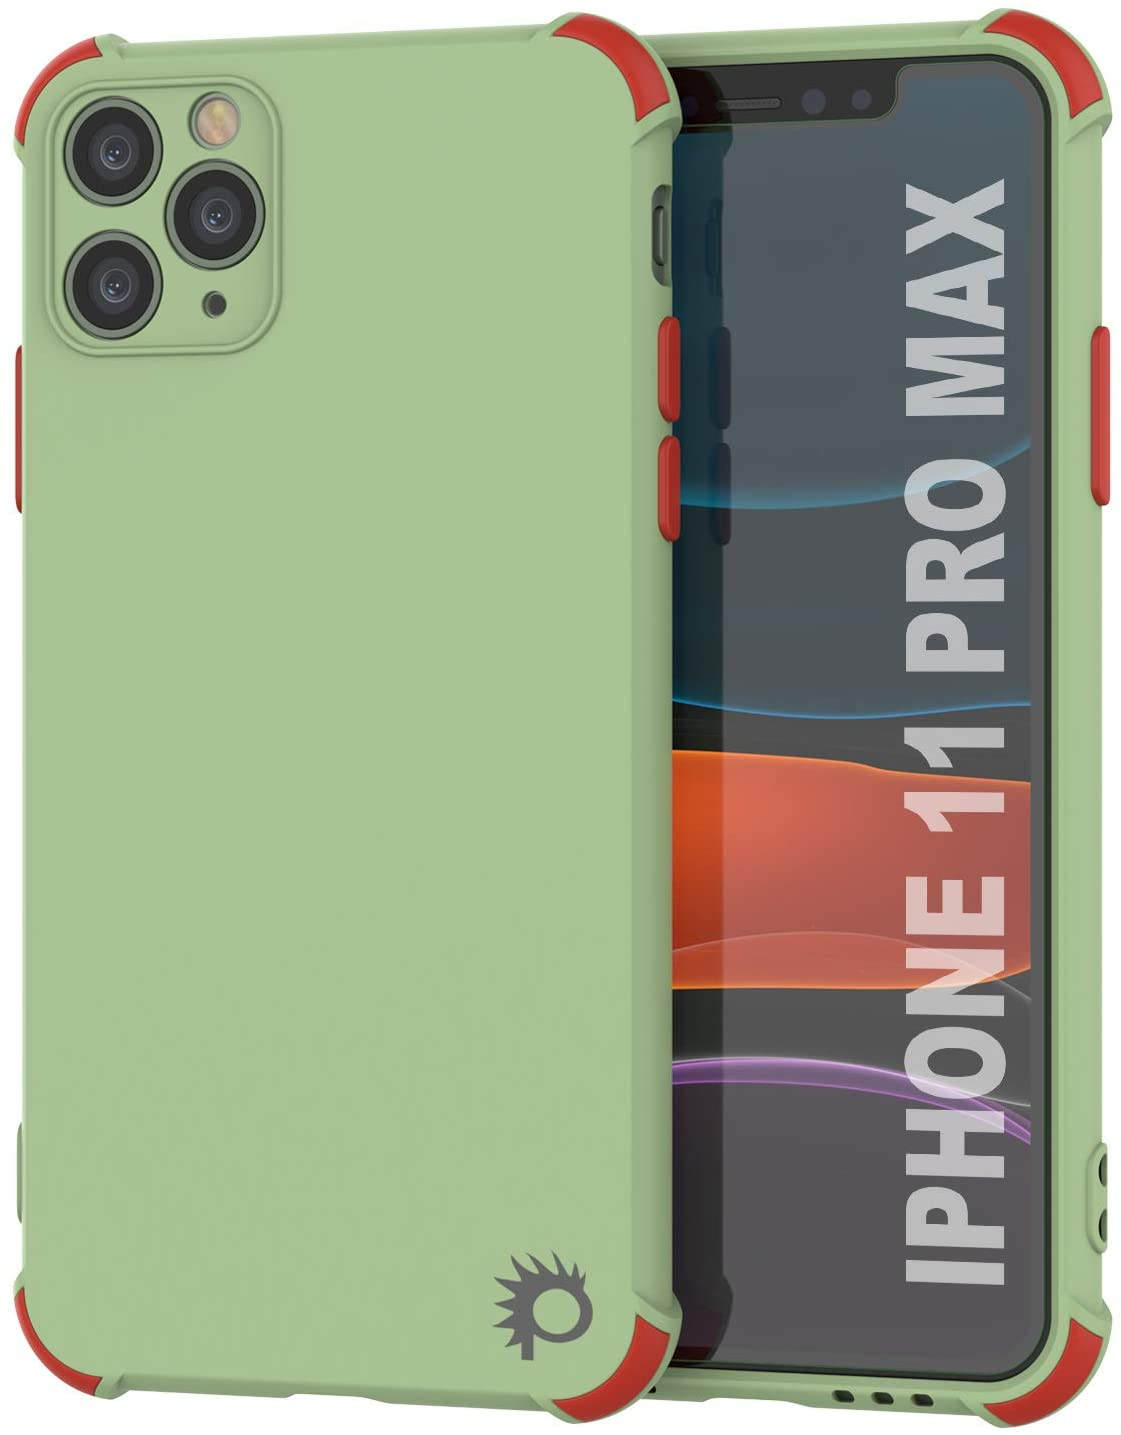 Punkcase Protective & Lightweight TPU Case [Sunshine Series] for iPhone 11 Pro Max [Light Green]